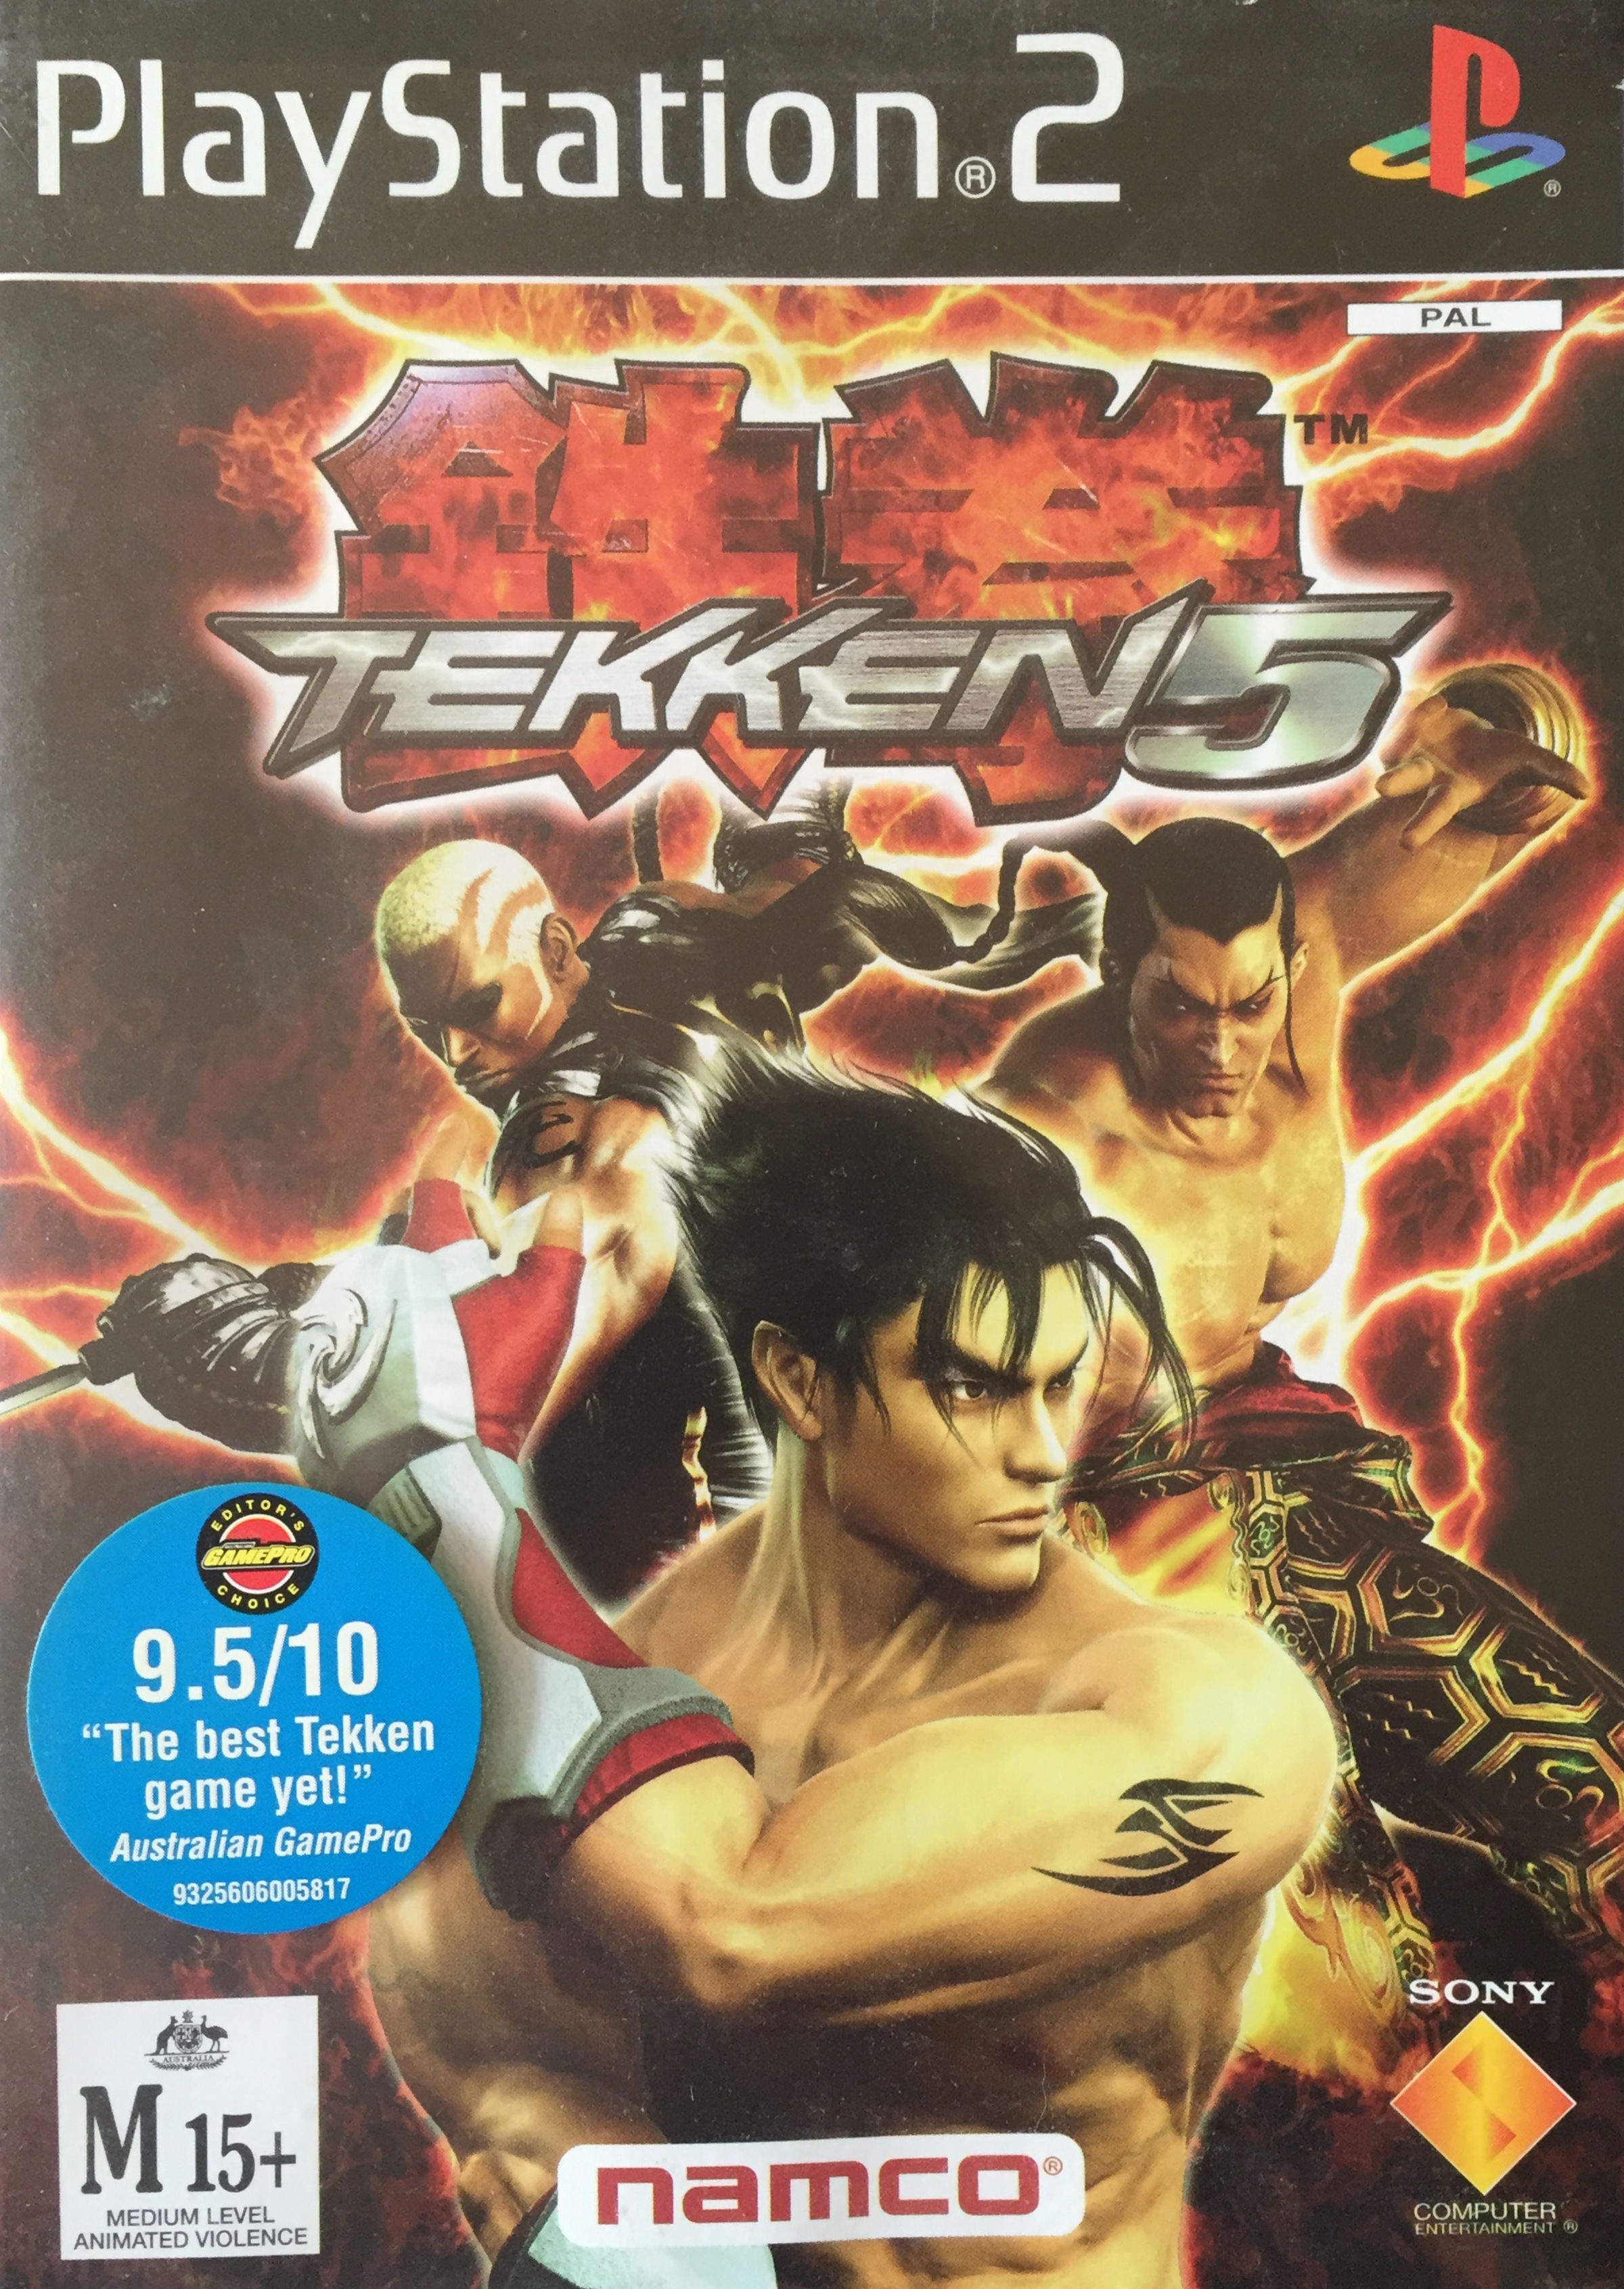 Tekken 5 鉄拳5 Video Game Ps2 Reviews Ratings Glitchwave